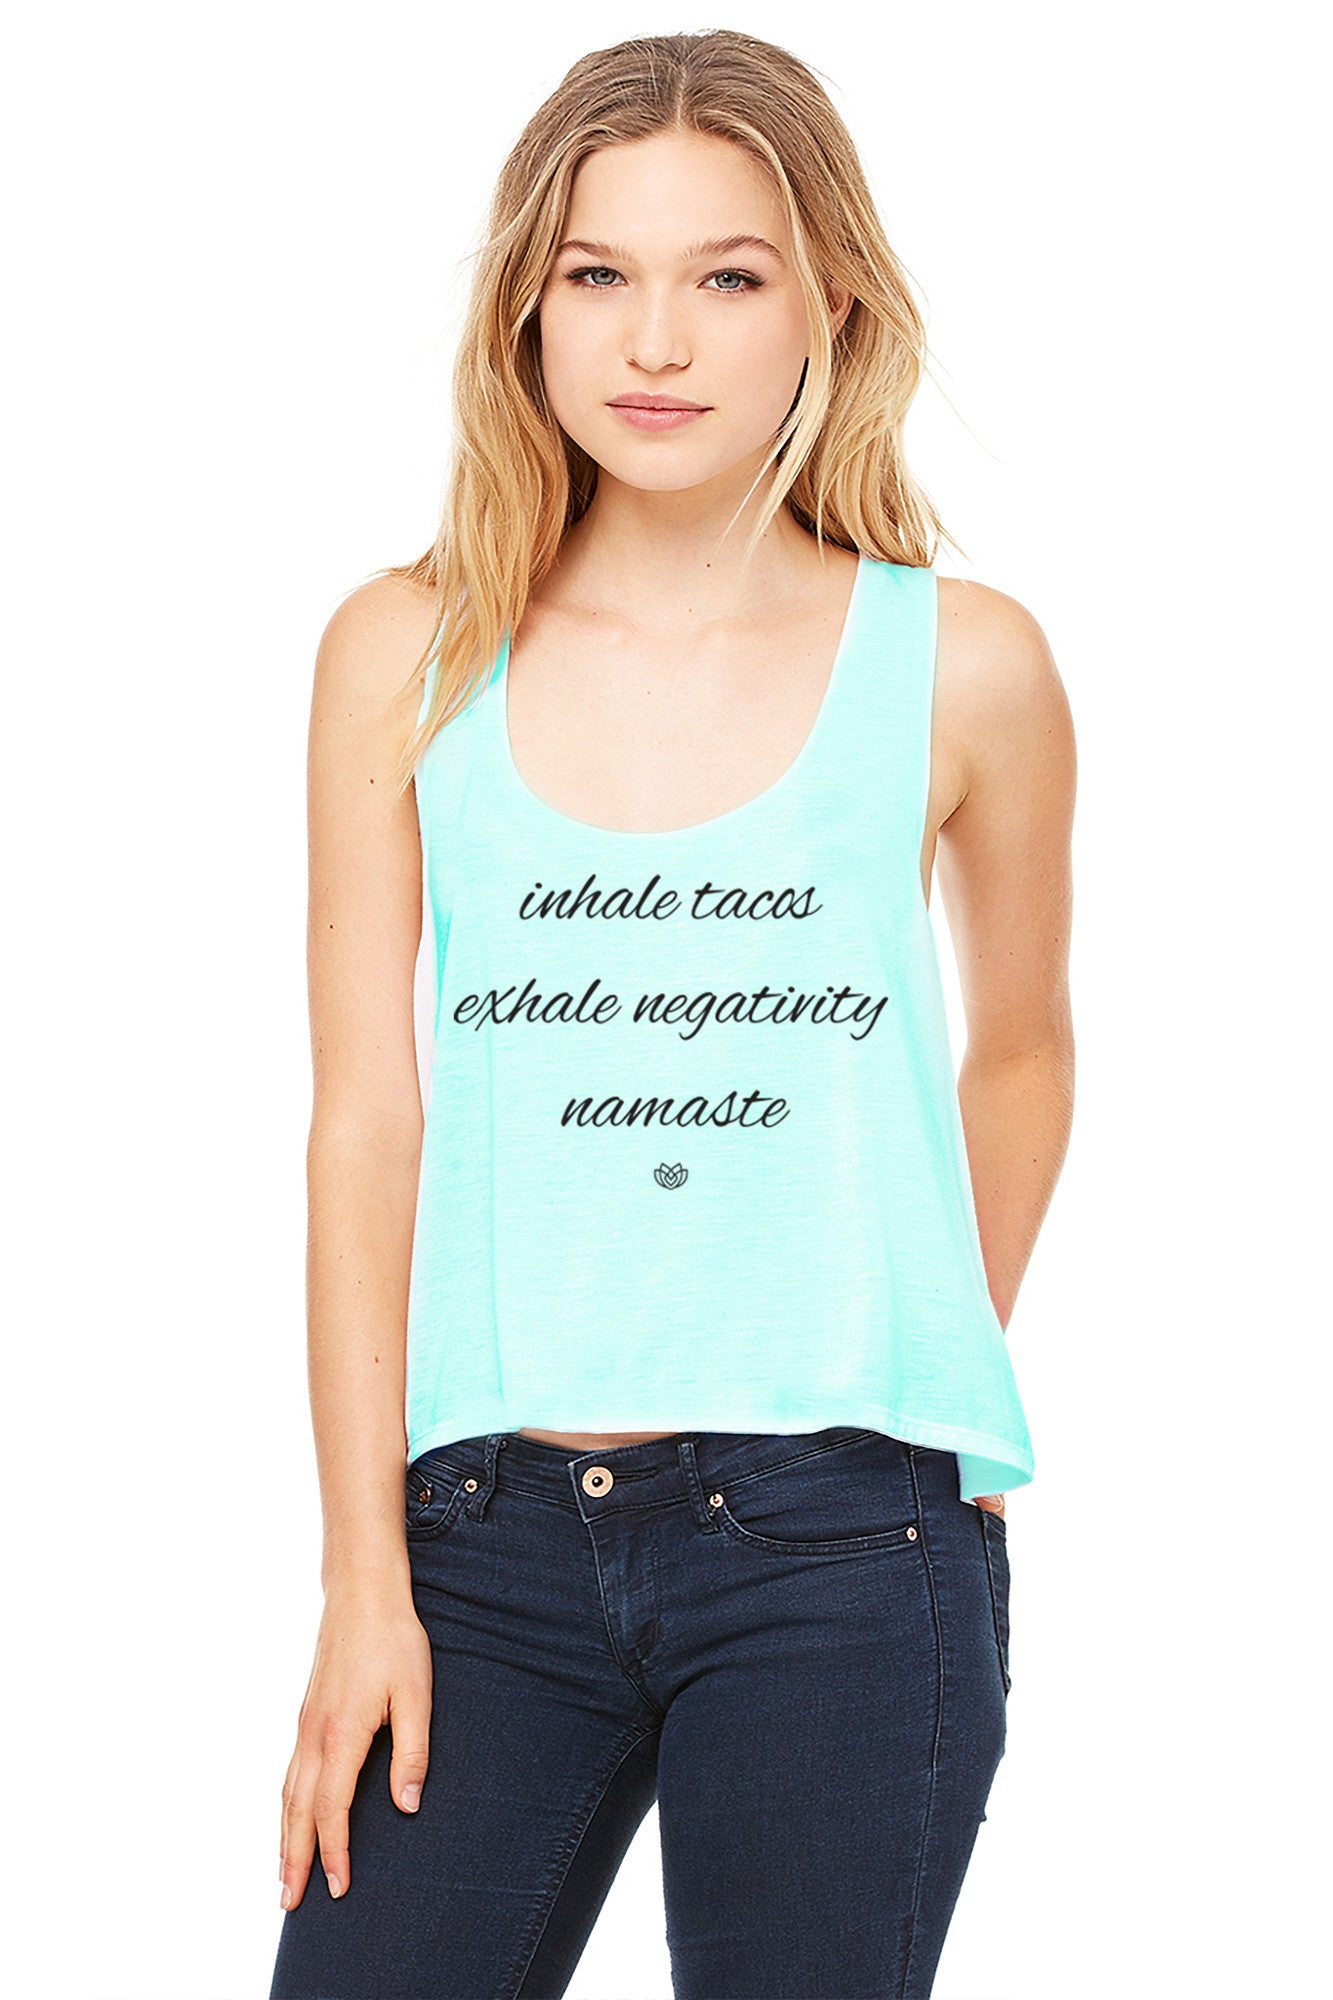 Inhale Tacos. Exhale Negativity. Namaste. Tank Top | Koalani Apparel